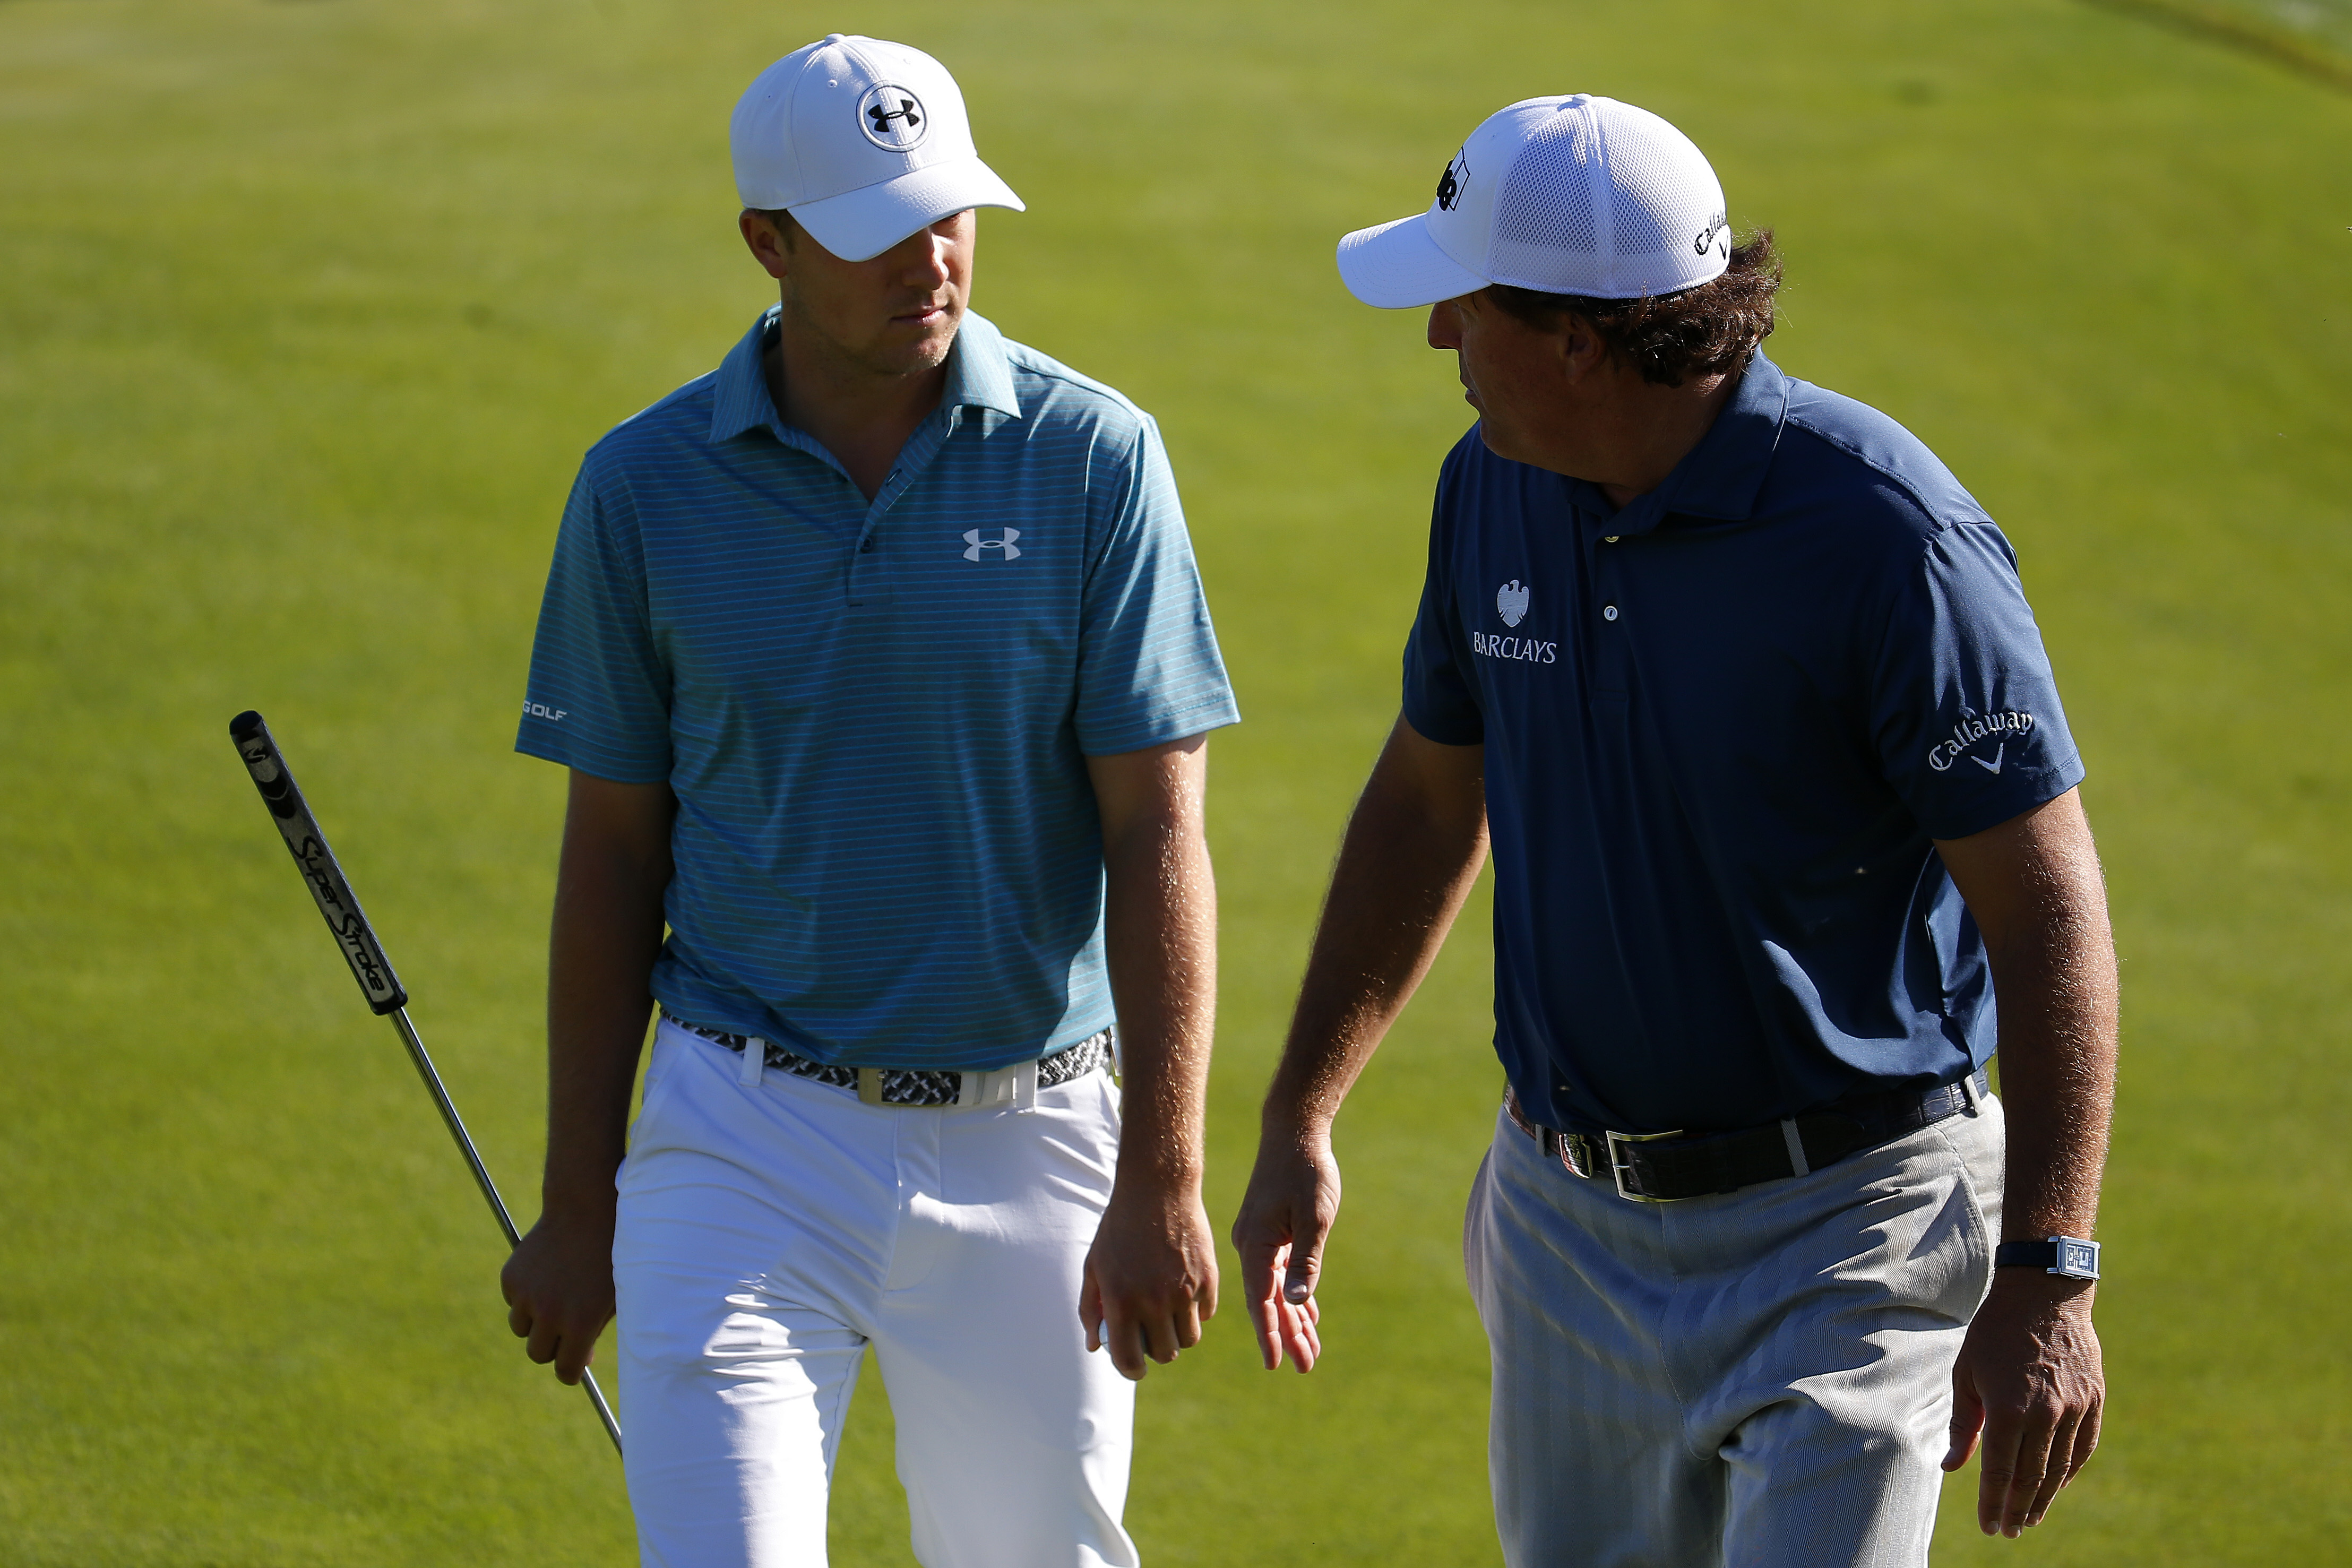 Phil Mickelson spends PGA practice round trash talking Jordan Spieth and Rory McIlroy